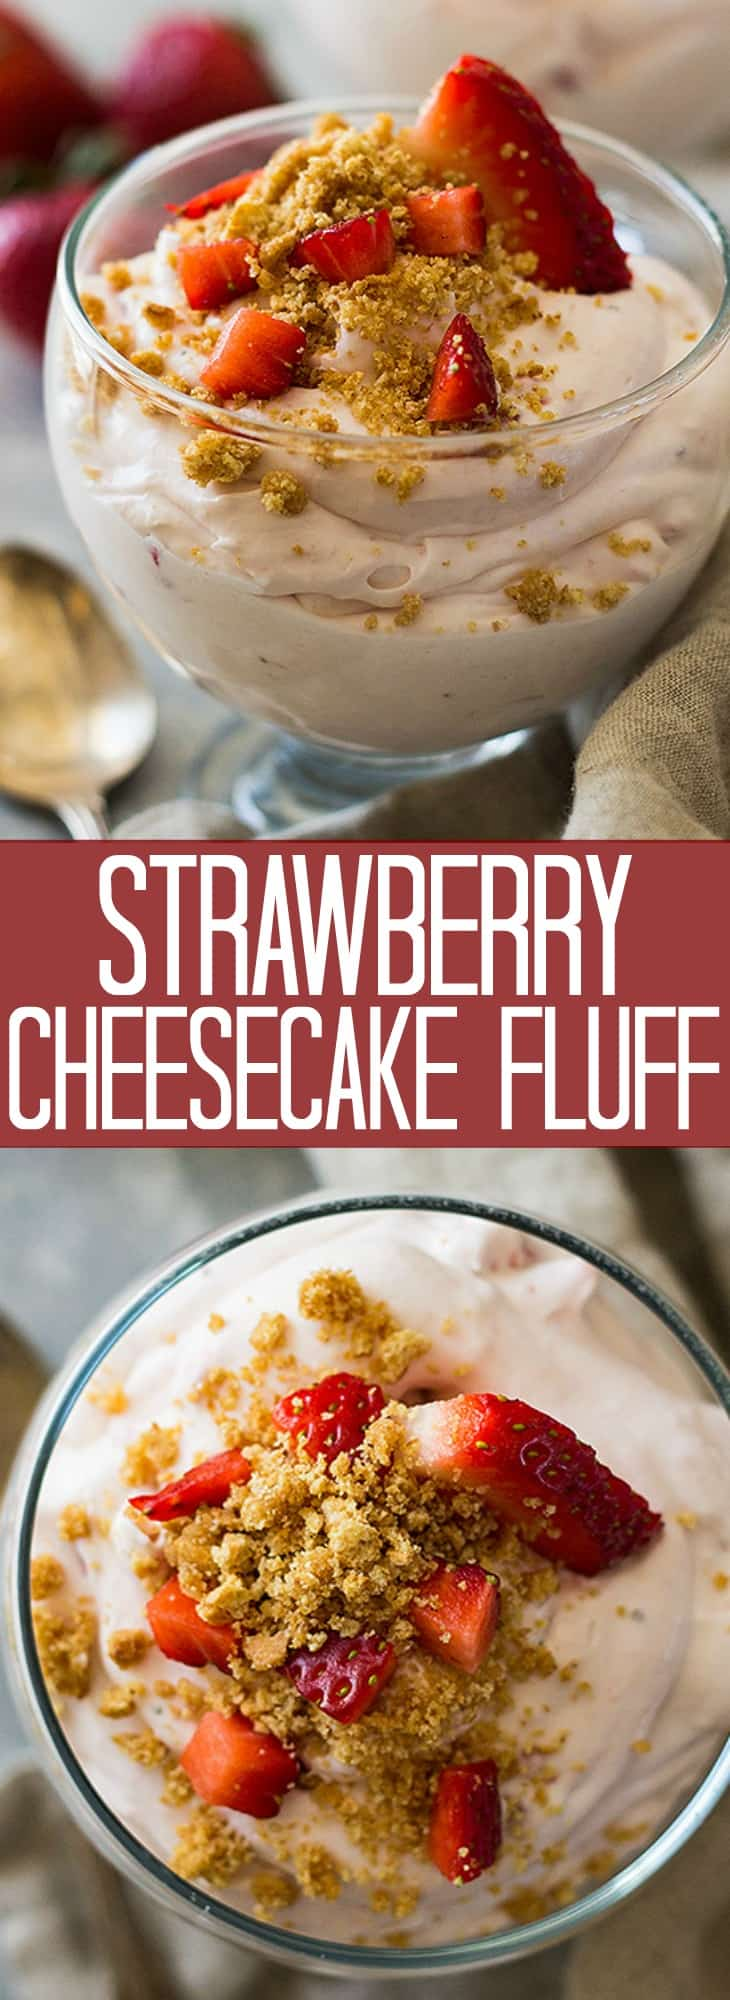 This Strawberry Cheesecake Fluff is a super easy dessert recipe! It's light and creamy, studded with sweet ripe strawberries and sprinkled with an easy graham cracker topping!